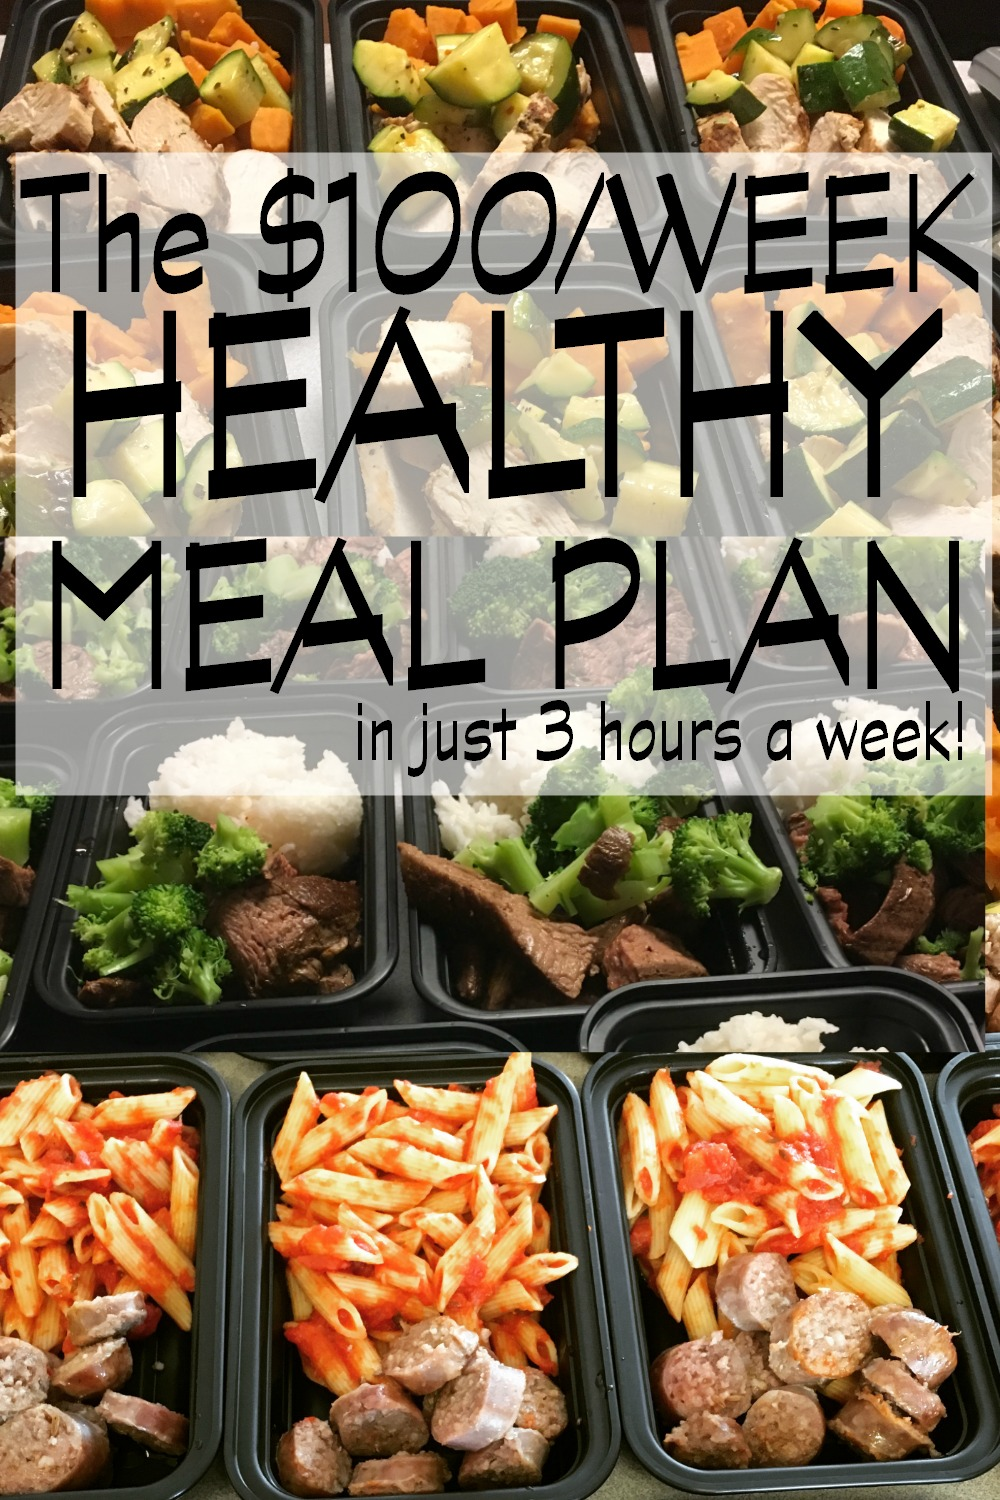 How to Make 74 Healthy Freezer Meals at Home in 3 Hours. We were looking for a cheap easy healthy meal plan and this was so much better than I could have hoped for. We spent 6 hours last week and made two weeks worth of meals and we're halfway through them. I lost 5 pounds, wasn't hungry but more importantly, meals became so easy! Hubby grabs a container out the door and throws his container out at work, At dinner, we heat and eat- ready to roll in 6 minutes! This was the best idea ever! - Super grateful busy mom